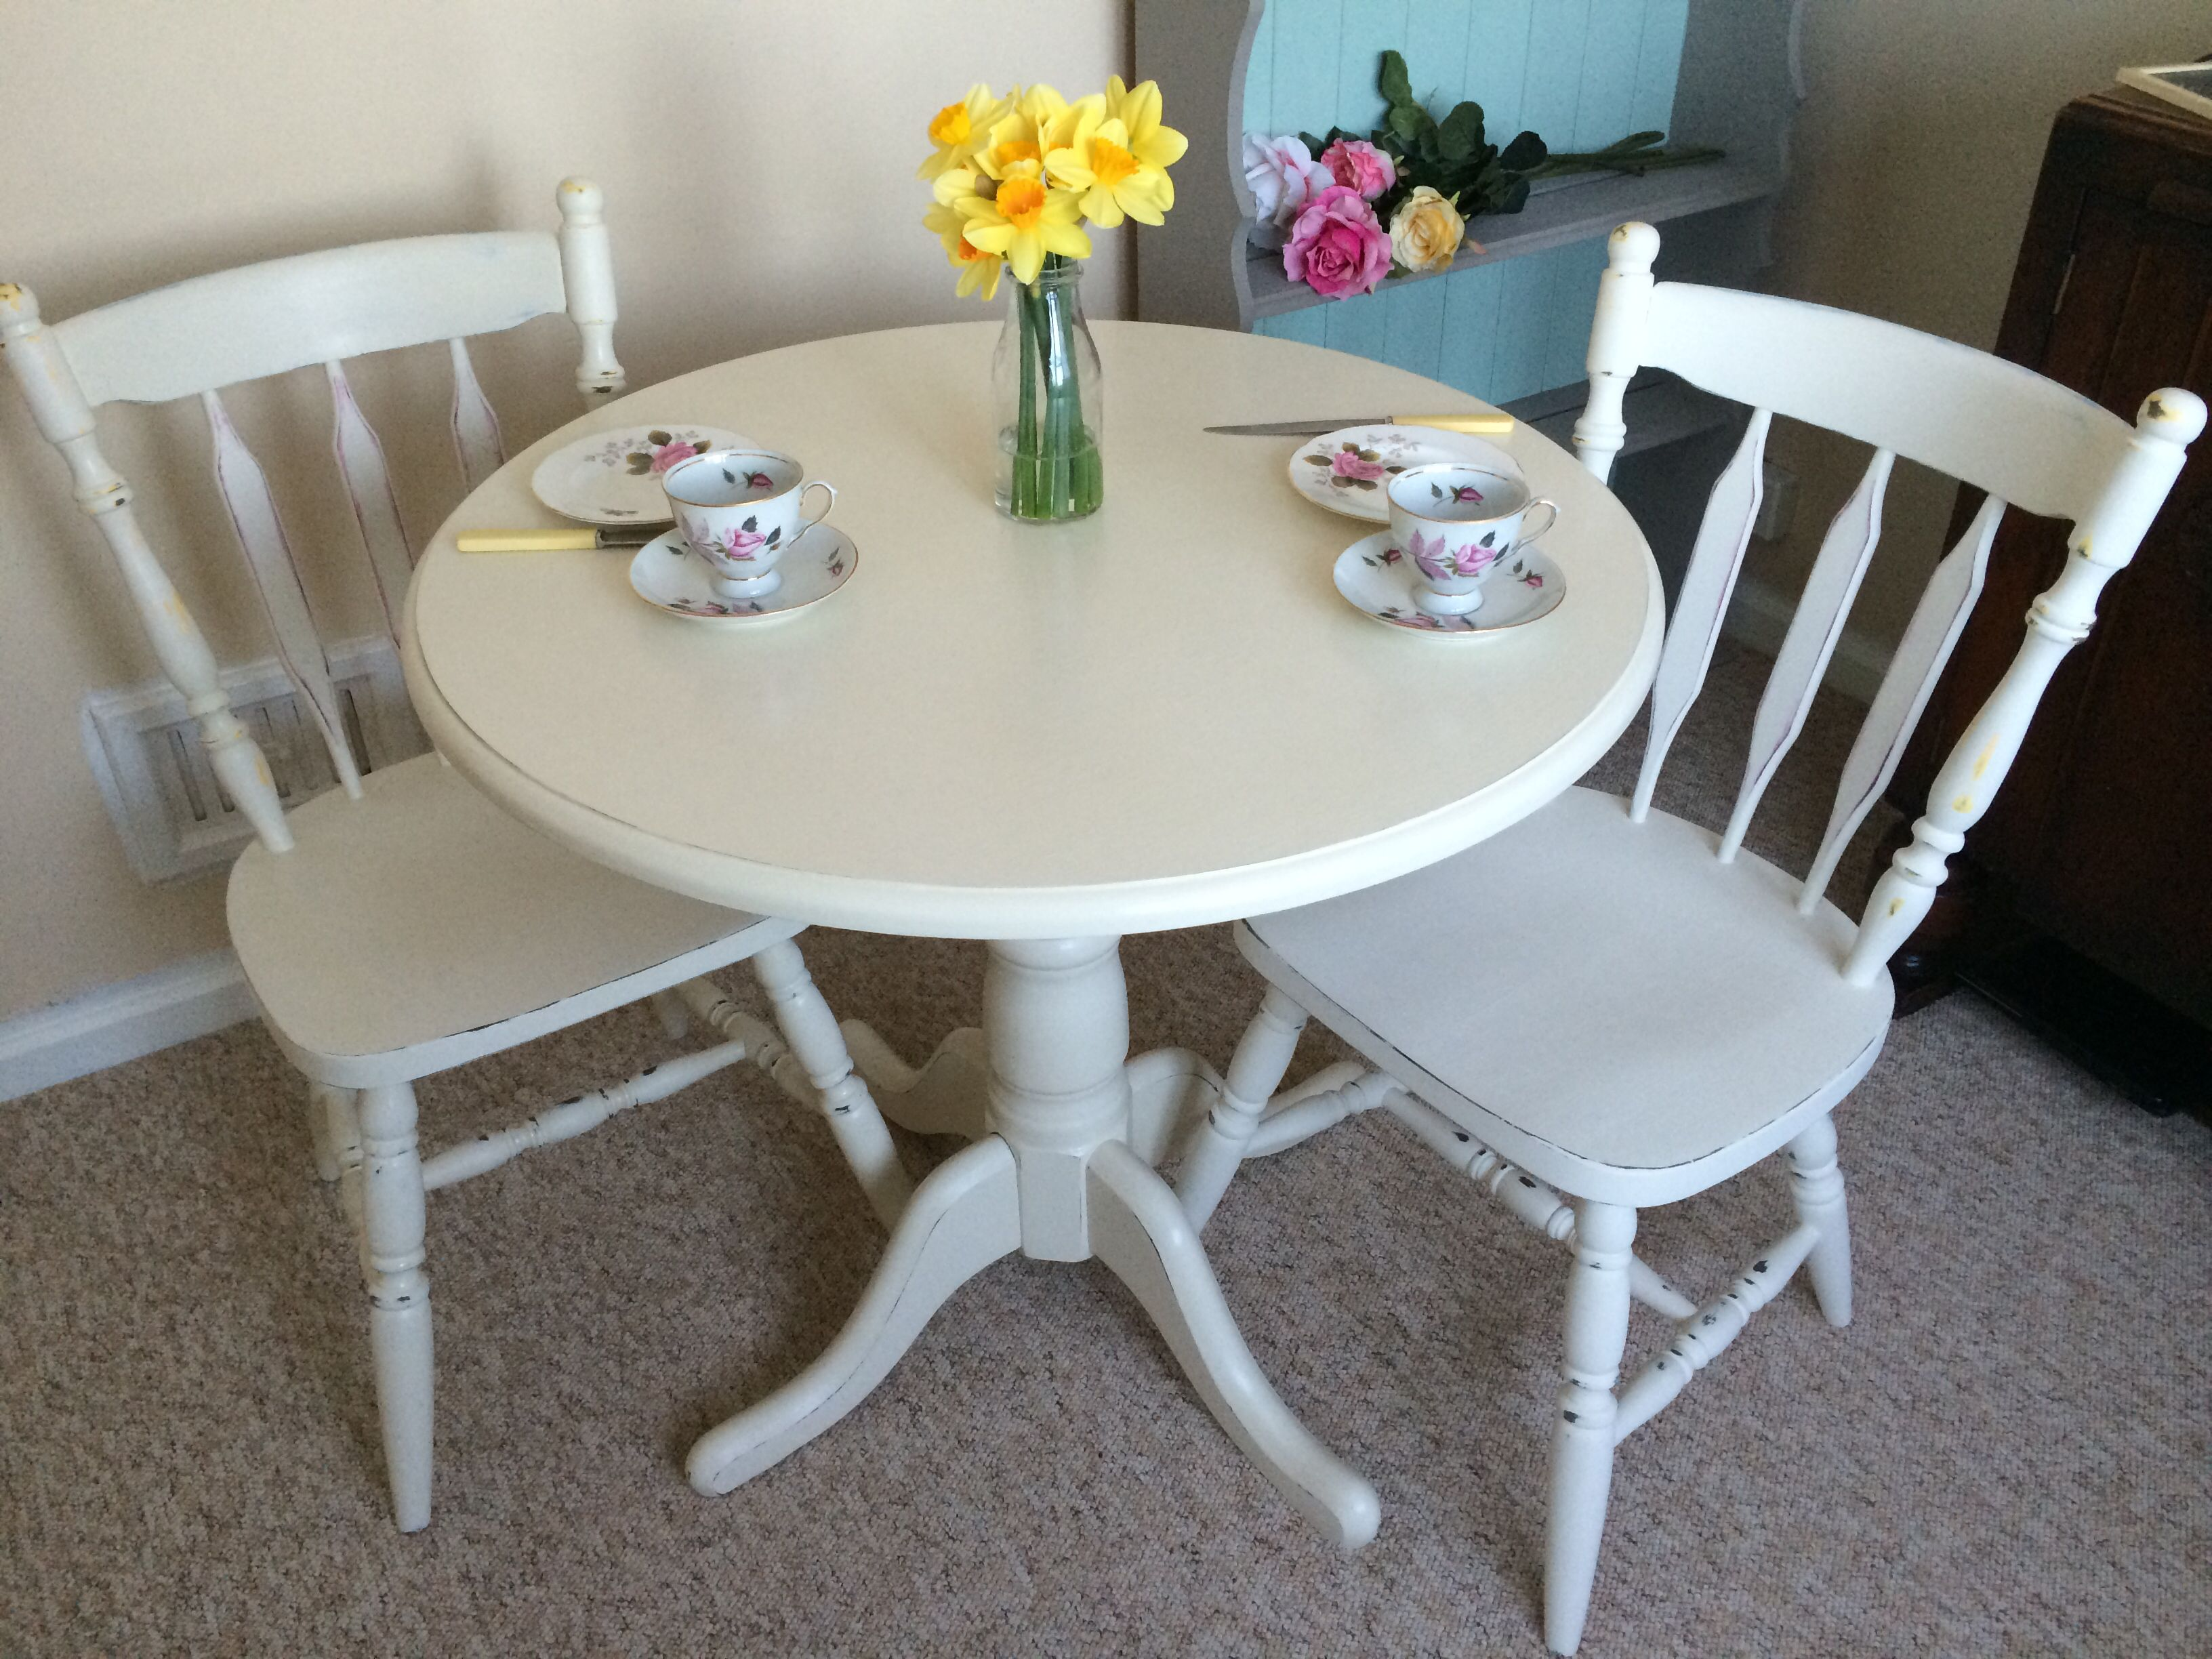 Cute Little Two Seater Table And Chairs Great For A Small Kitchen Diner Chair Backs Painted In Ice Dining Table Small Table And Chairs 2 Seater Dining Table